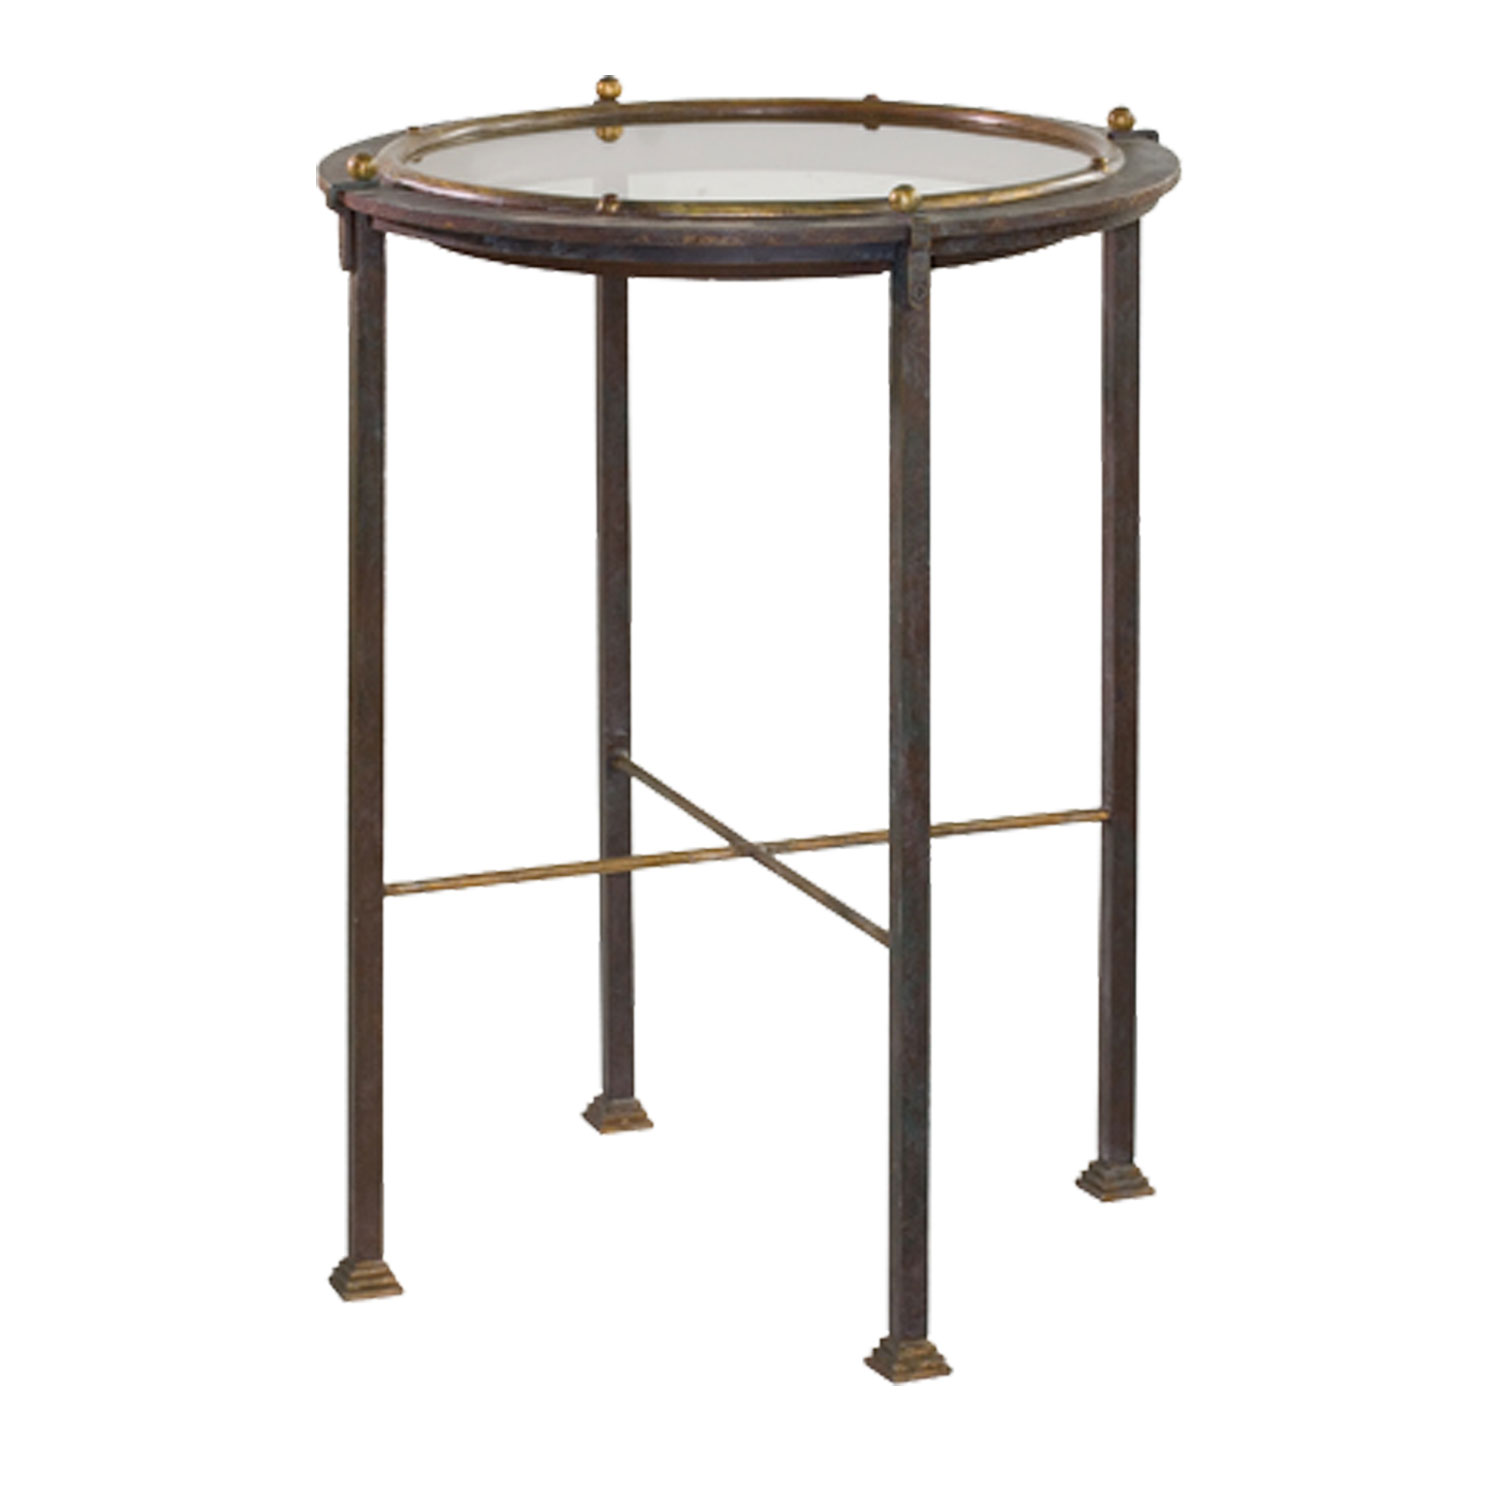 snap metal virgil accent table fireplaces club chairs and love this david iatesta studio porthole furniture side tables industrial traditional rose gold coffee ikea dining patio